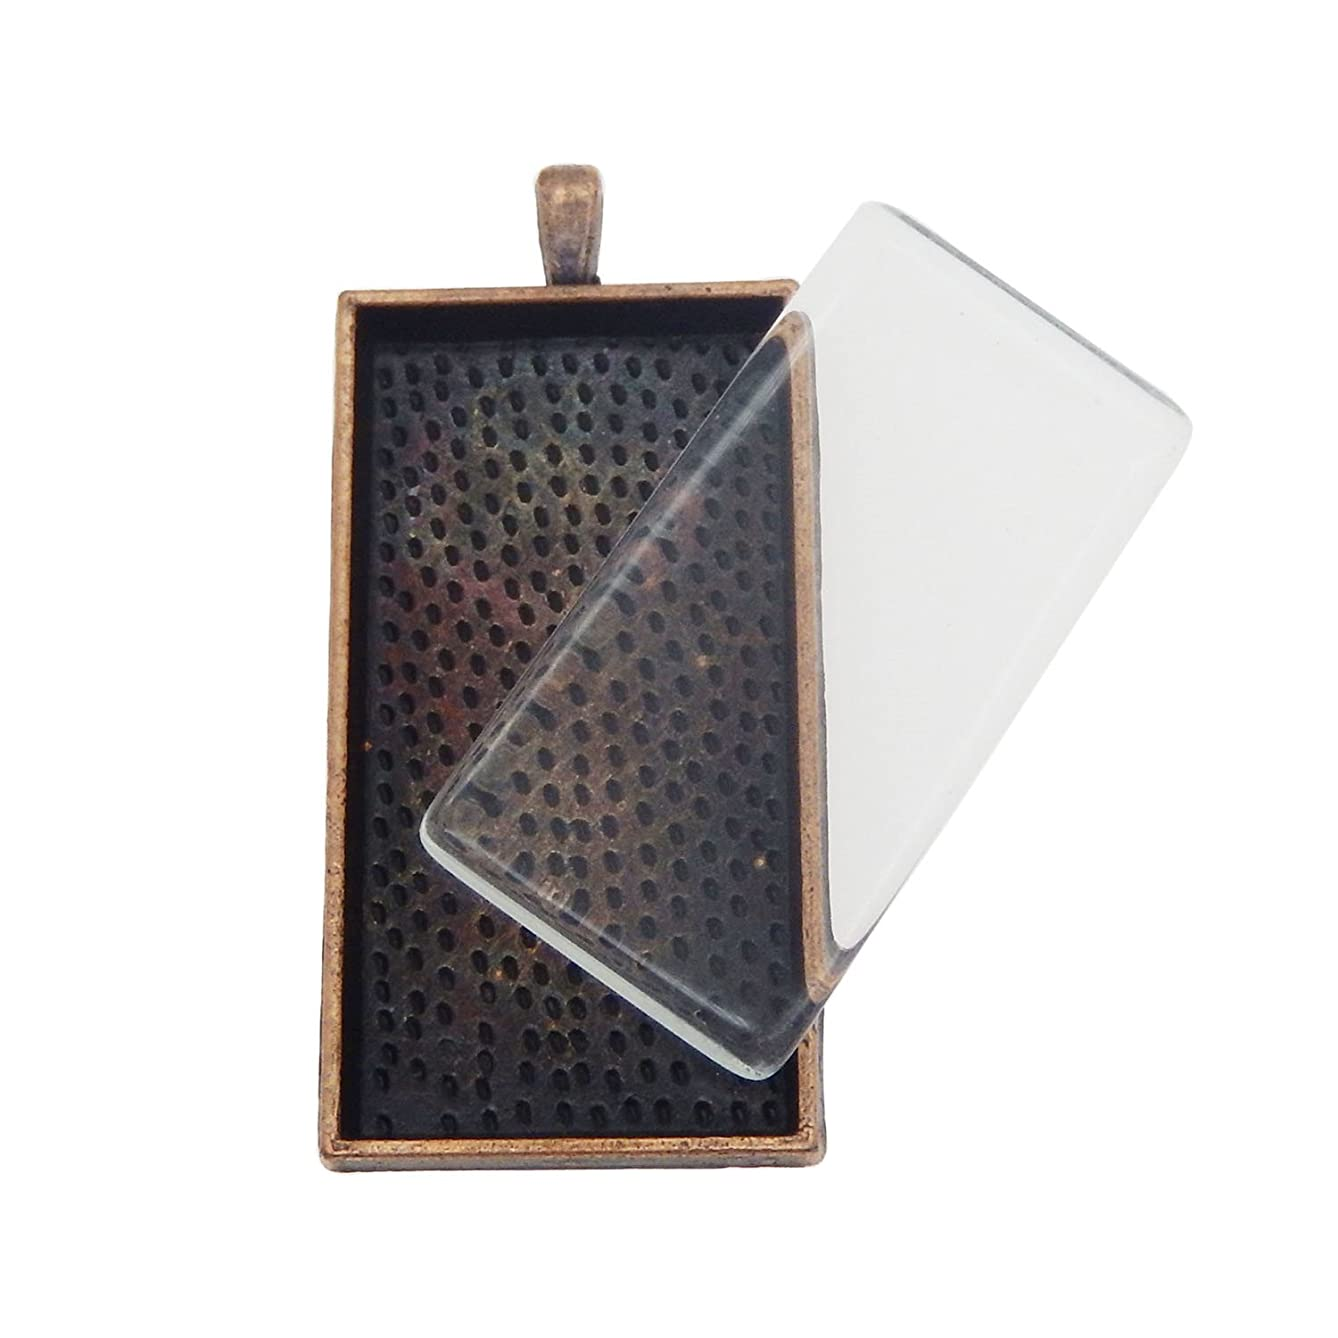 Julie Wang 10 Sets Large Rectangle Photo Setting Tray Pendant with Glass Cabochons Pendant Kit Set (Red Copper)